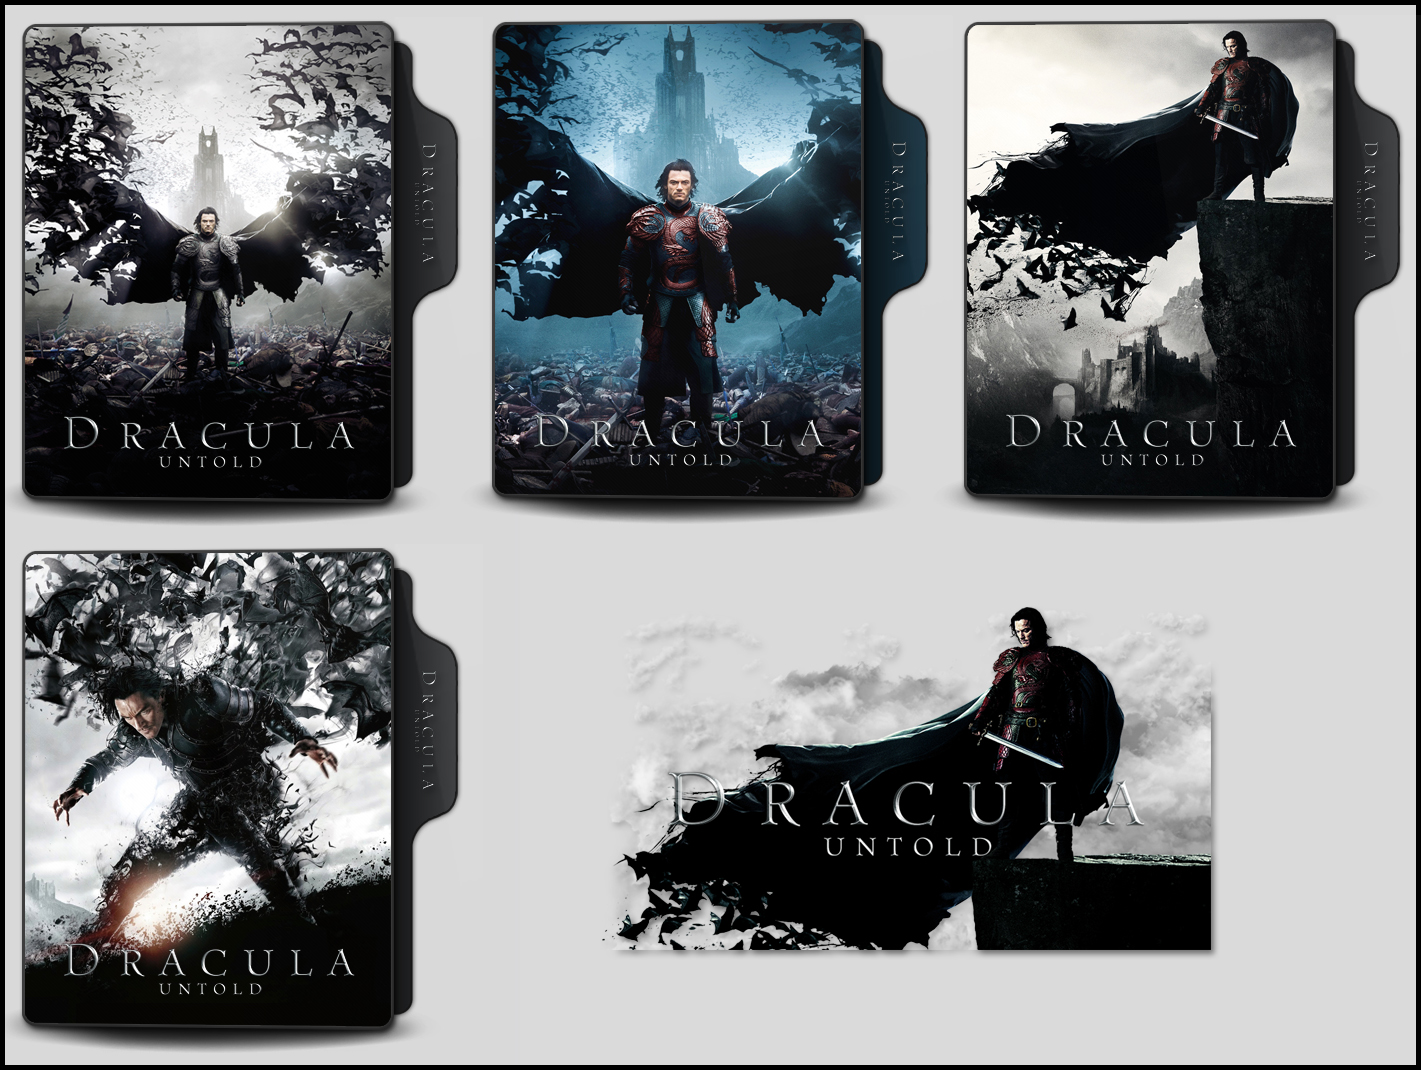 Dracula Untold 2014 Folder Icons By Onlystylematters On Deviantart